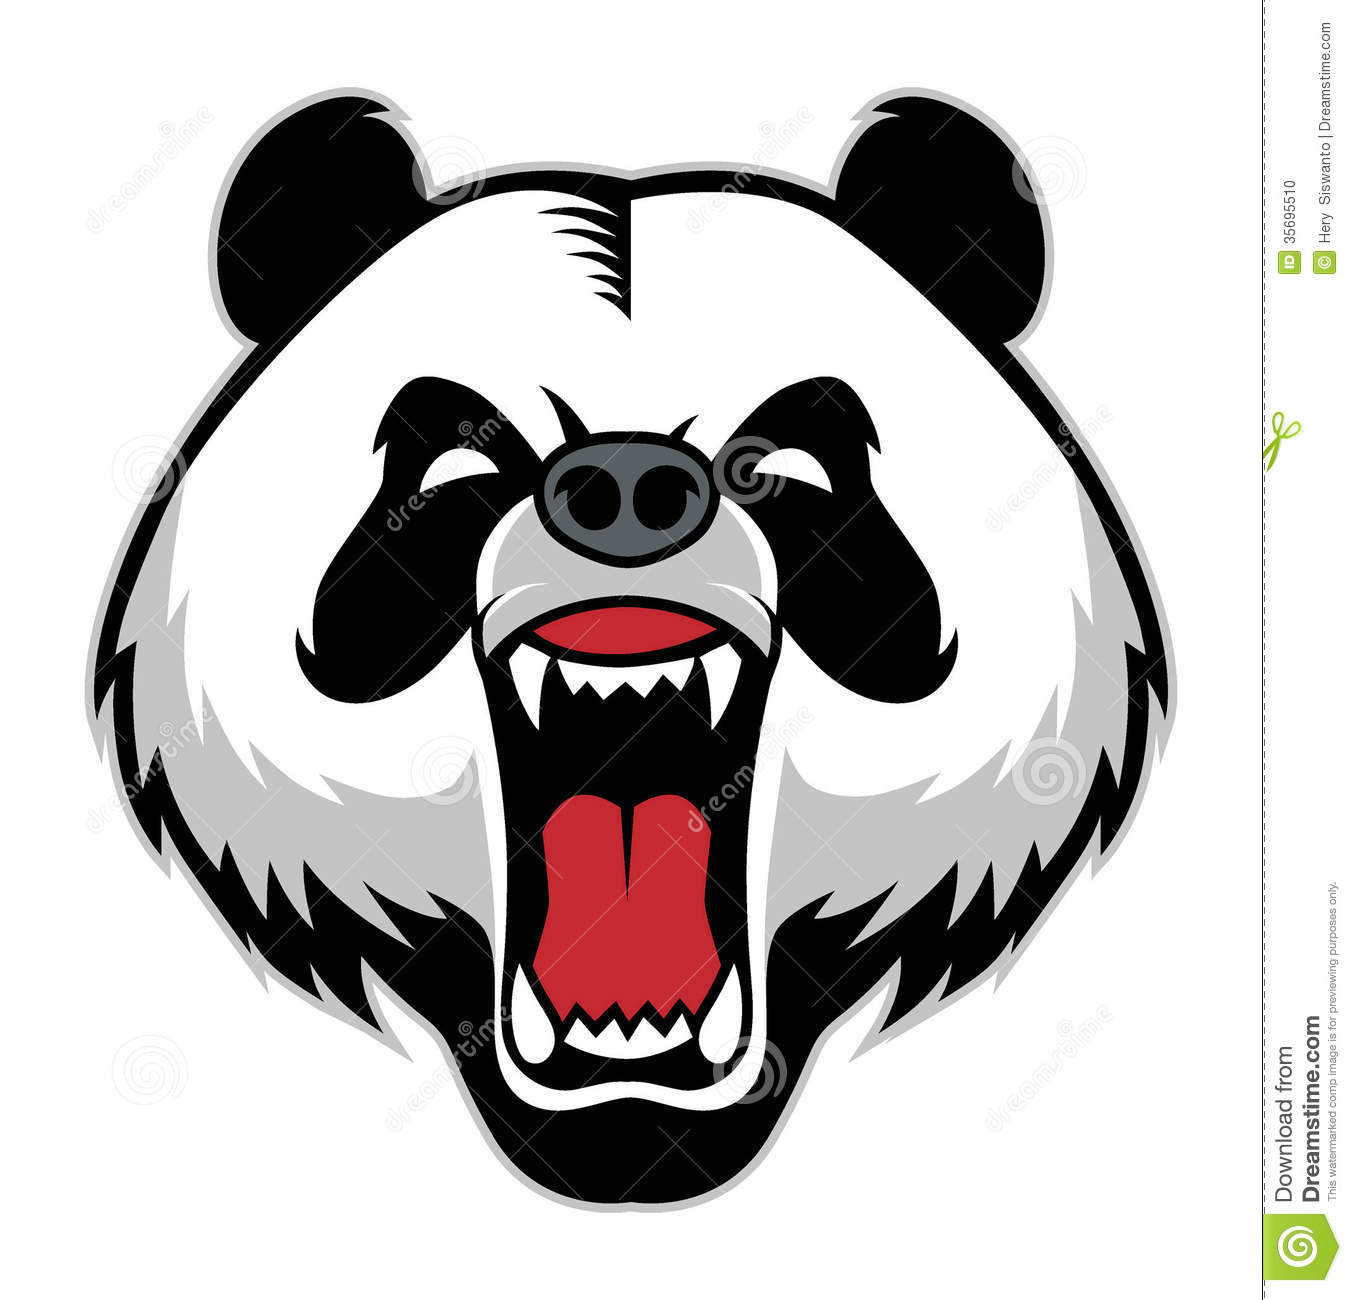 panda head mascot stock photo image 35695510